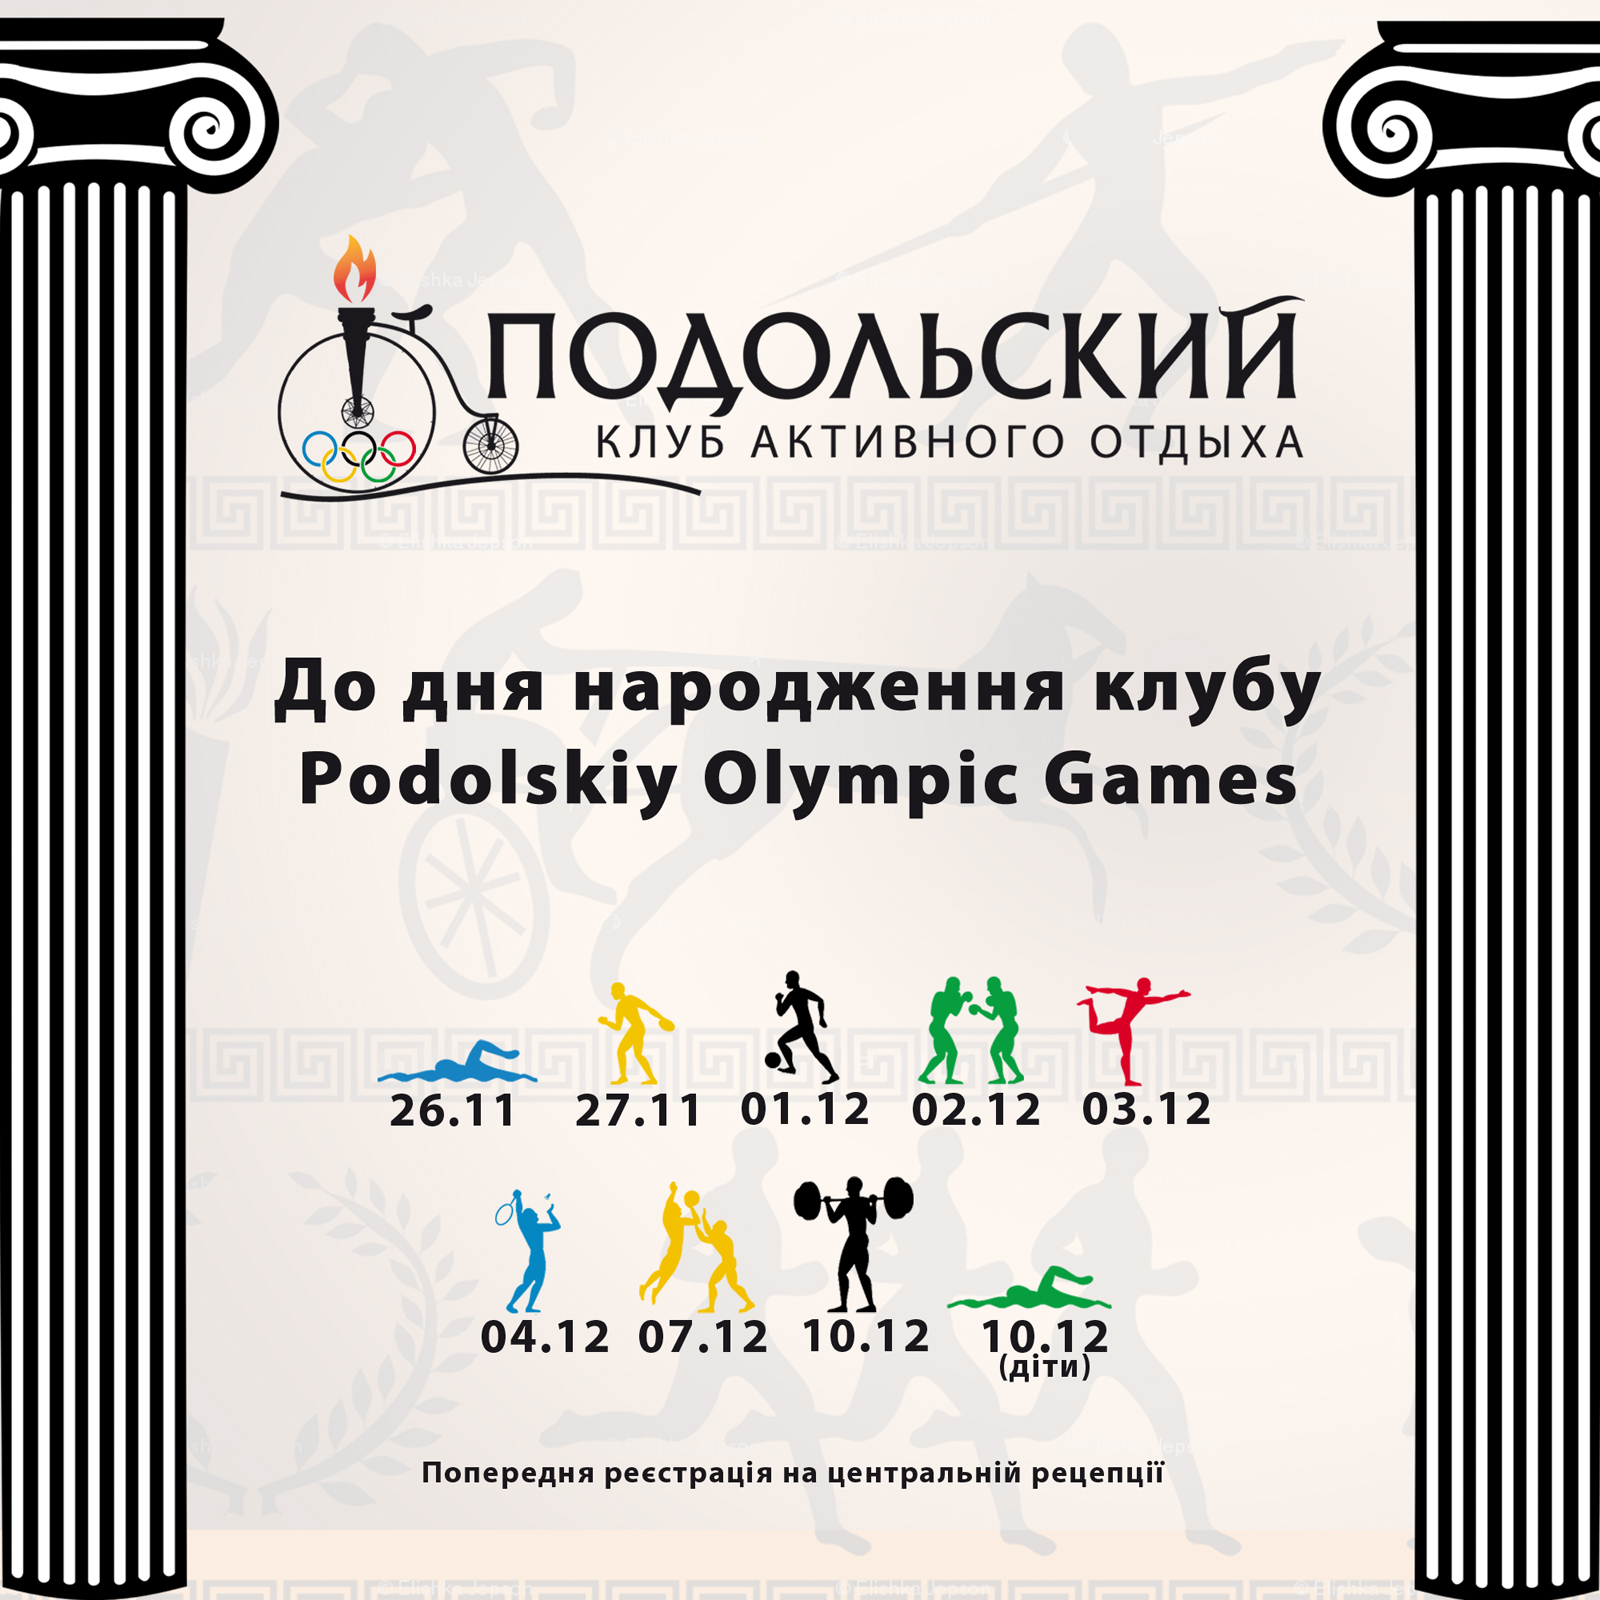 Podolskiy Olympic Games - з 26 листопада!